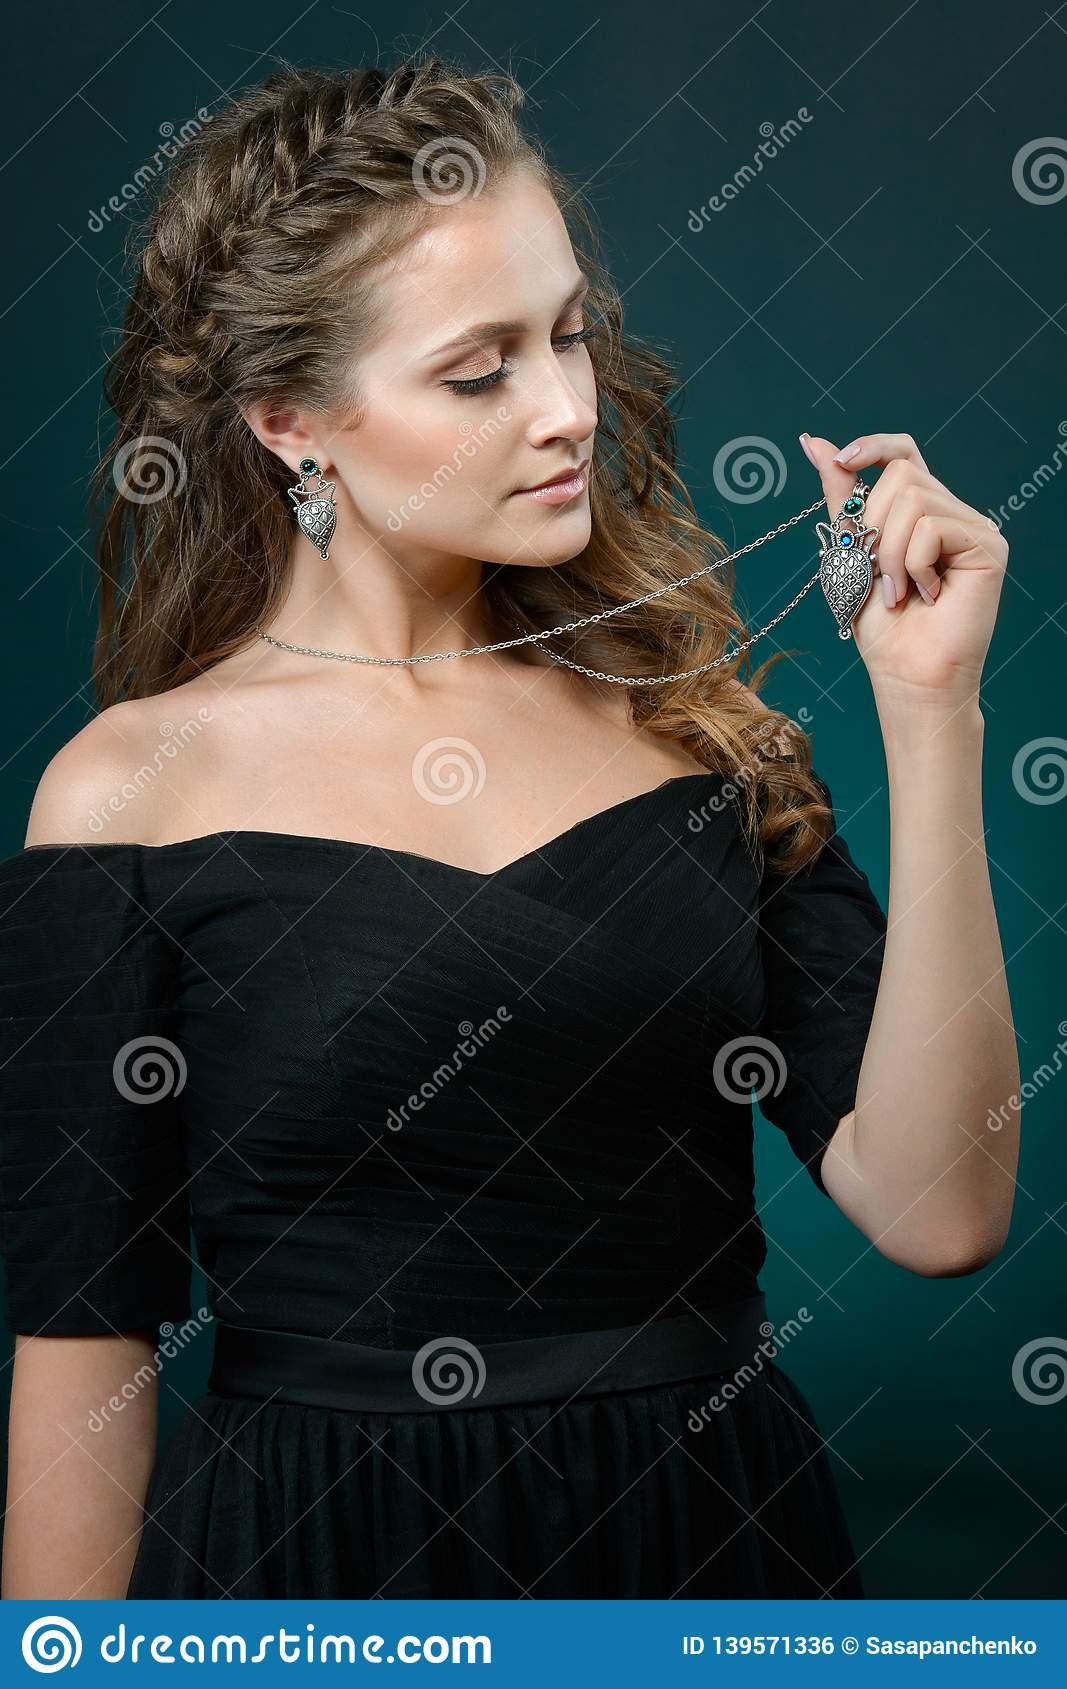 Fashionable woman demonstrated collection luxury accessory and jewelry